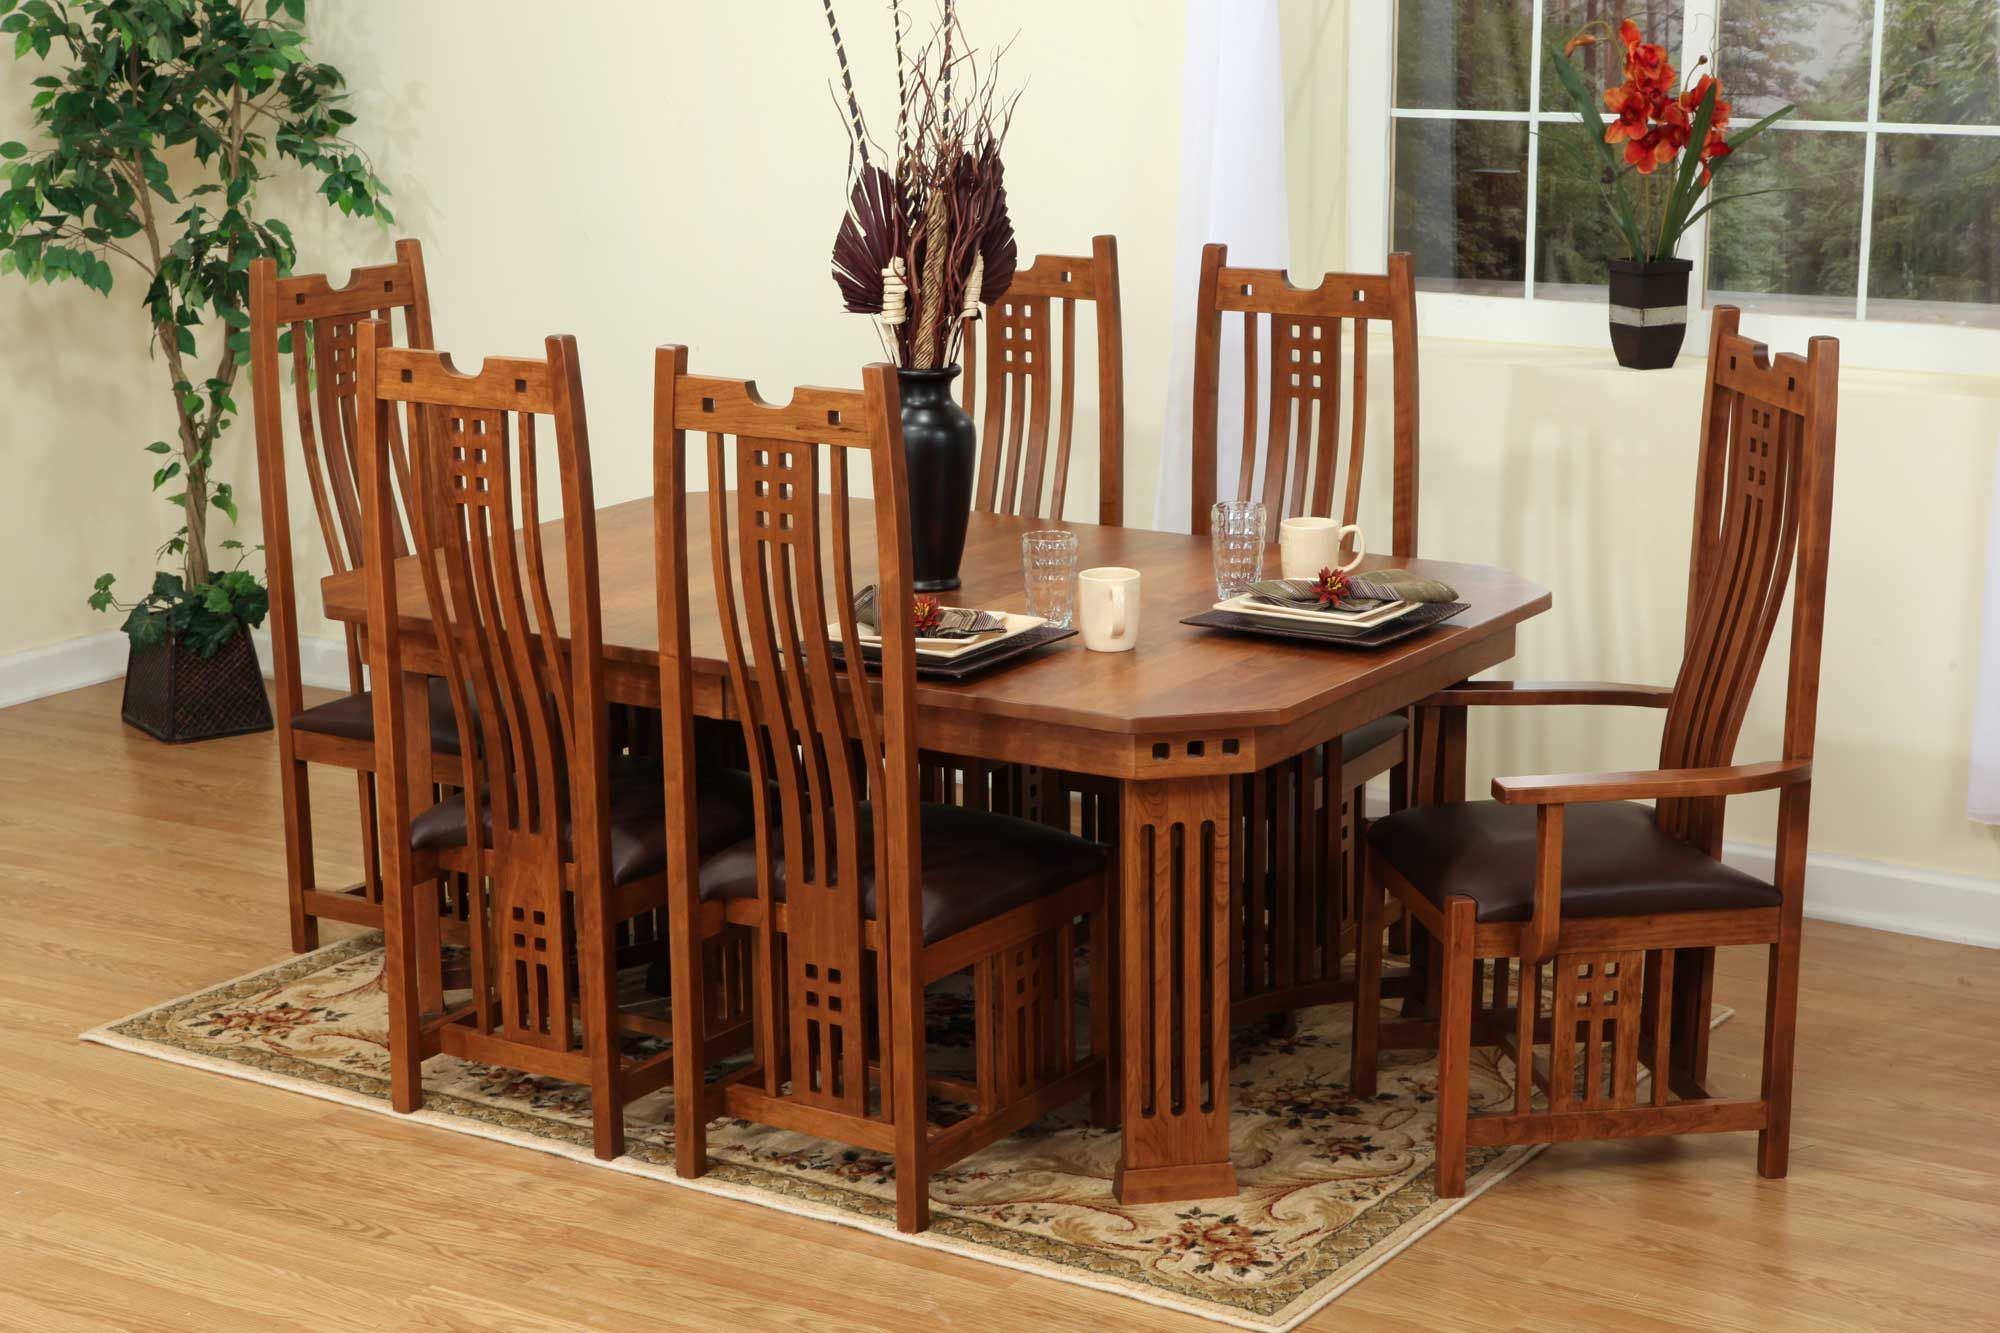 Dining Room Furniture San Diego Wonderful Mission Style Bedroom Furniture In San Diego And